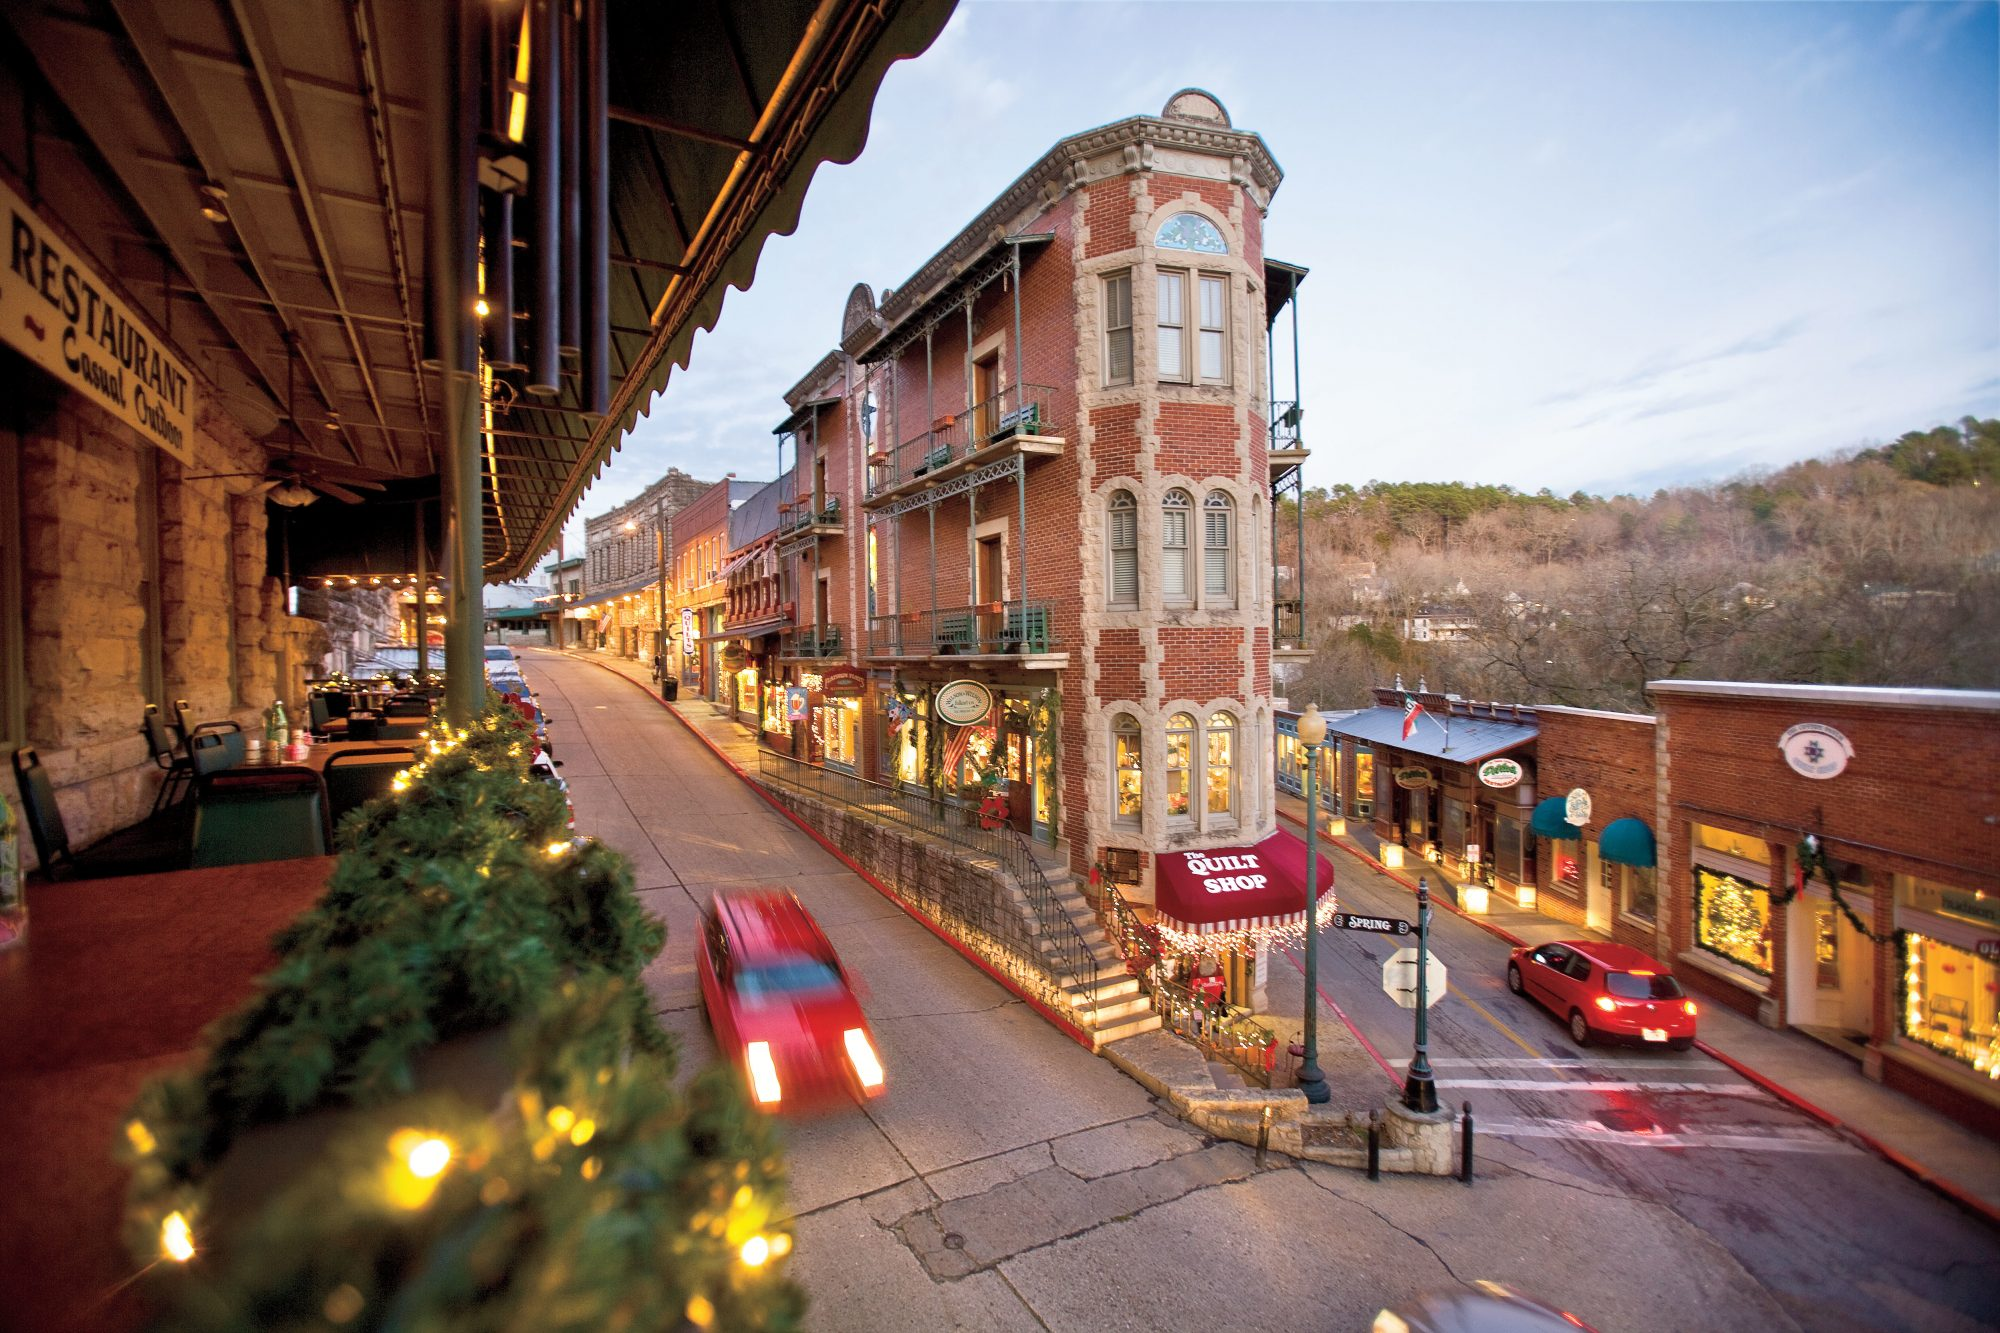 13. Eureka Springs, Arkansas